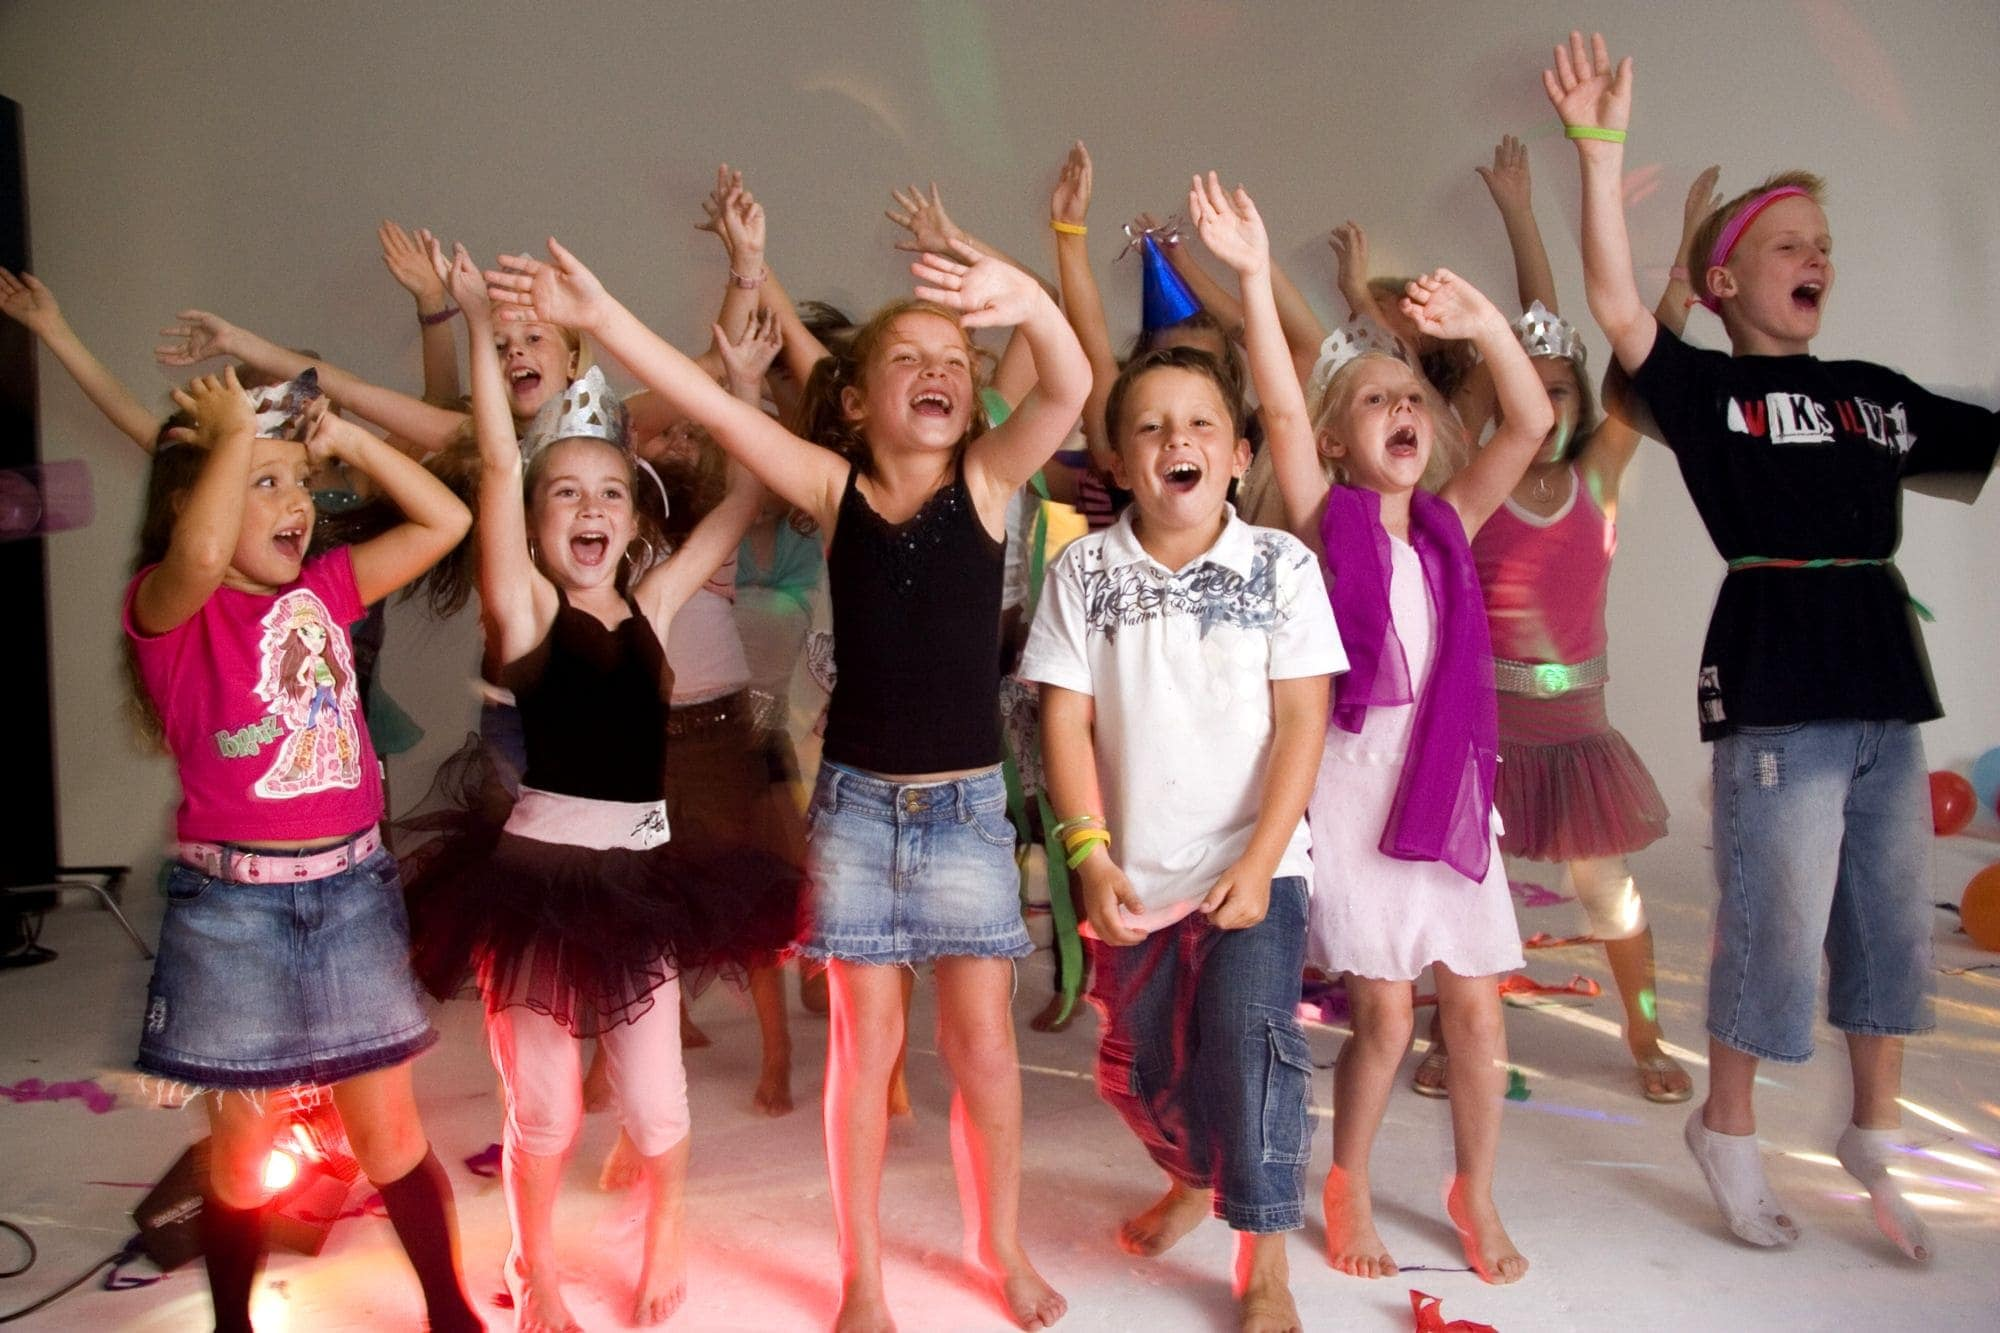 Disco Birthday Party For Kids Adelaide Bop Till You Drop - Children's birthday parties adelaide